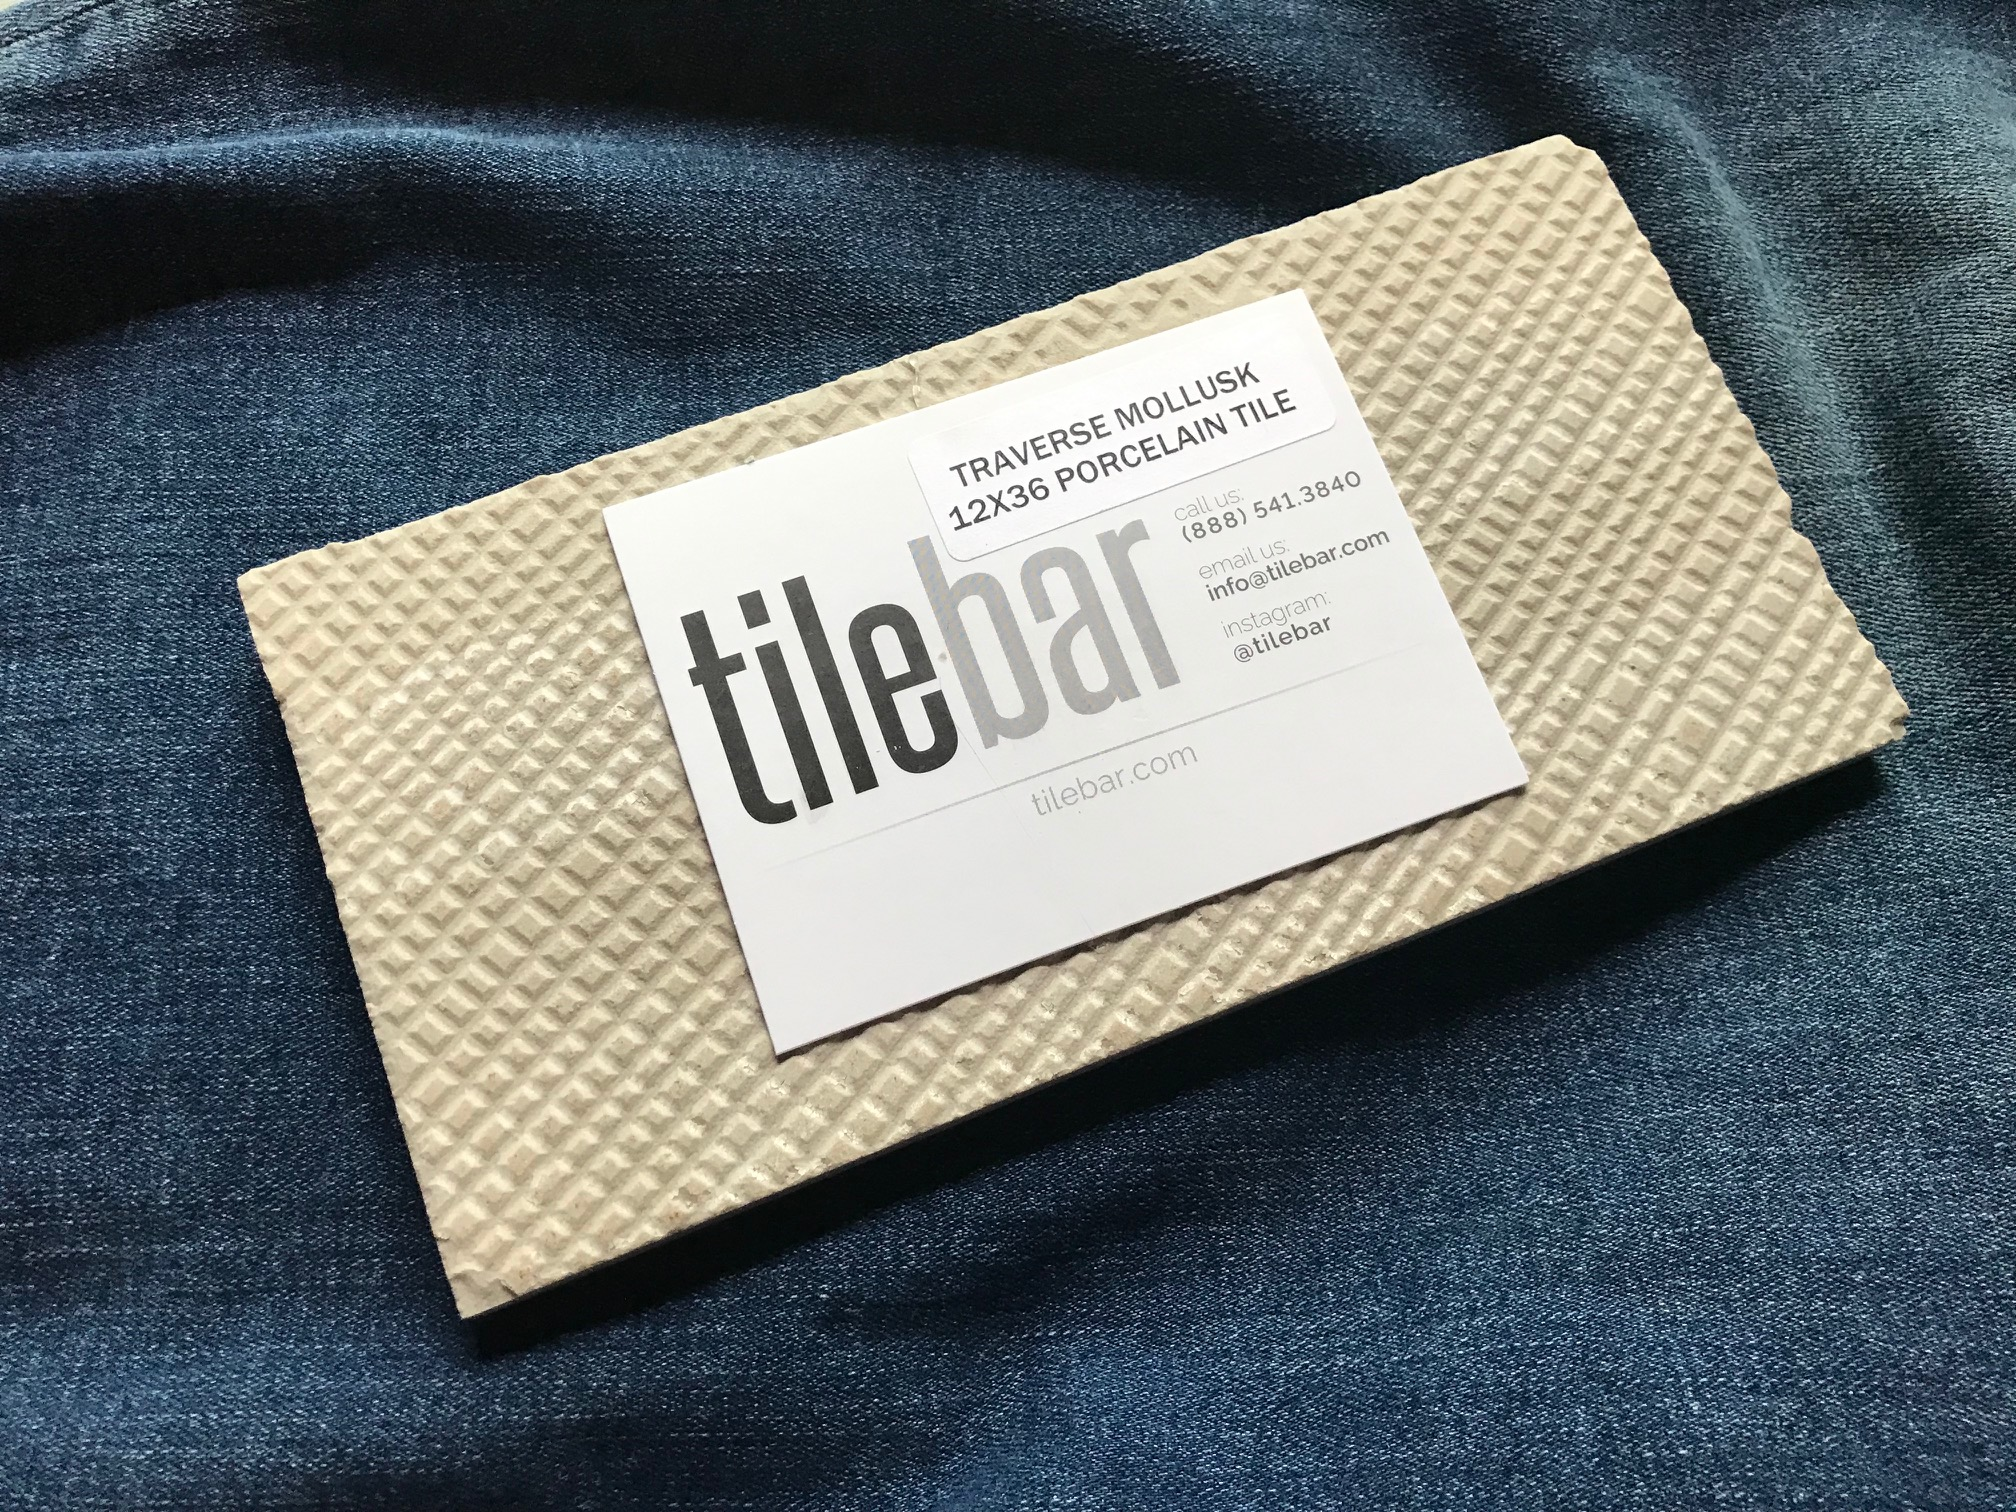 Traverse Mollusk ceramic tile from tilebar: 40 +/- 15 ppm Lead (safe by all standards)